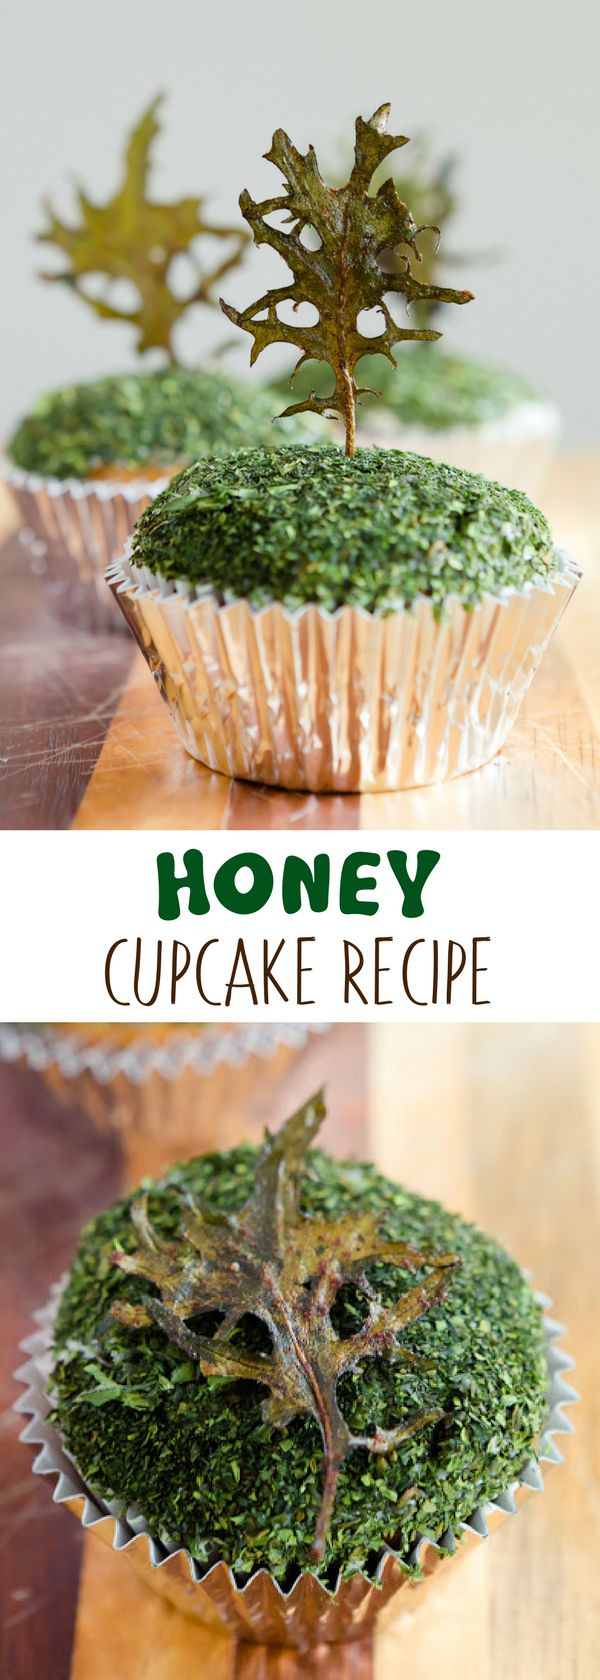 Easy and healthy cupcakes, anyone? These honey cupcakes are made with both honey and honey-flavored Greek yogurt.  They were the best honey cupcakes I have made to date. Yummy and taste quite good and your kids will definitely love this. For more simple baking desserts recipes and homemade sweet treats, check us out at #cupcakeproject. #desserts #yummydesserts #recipeoftheday #sweettooth